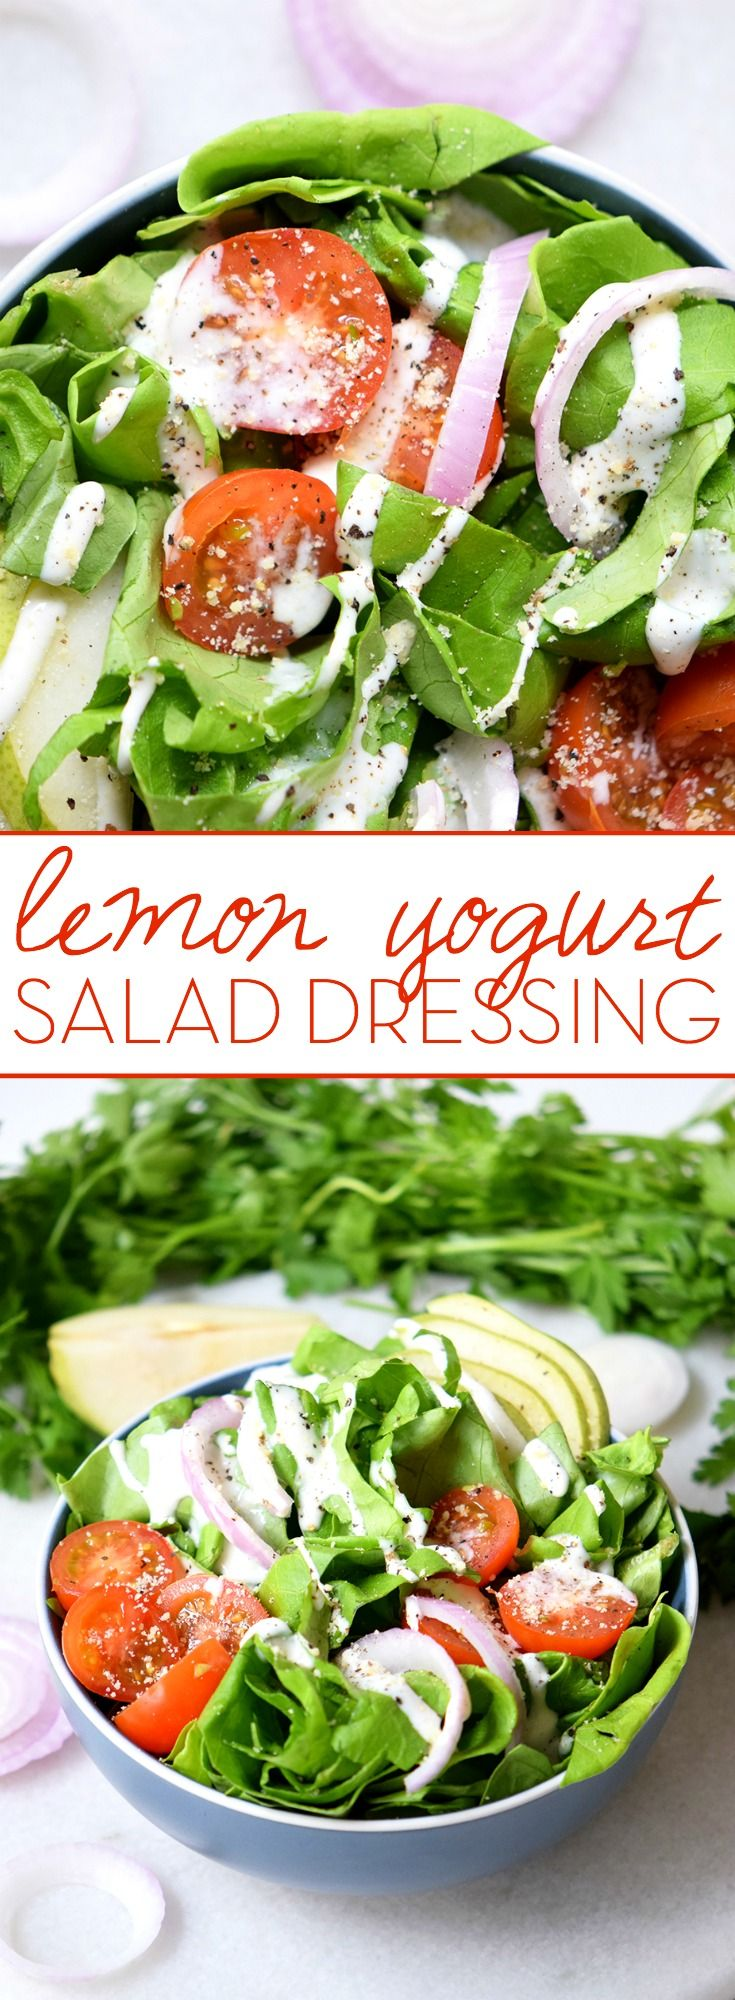 This healthy dressing starts with a Greek Yogurt base and kicks it up with Lemon and Thyme. The result is a creamy lemon yogurt salad dressing you'll be drizzling on everything!